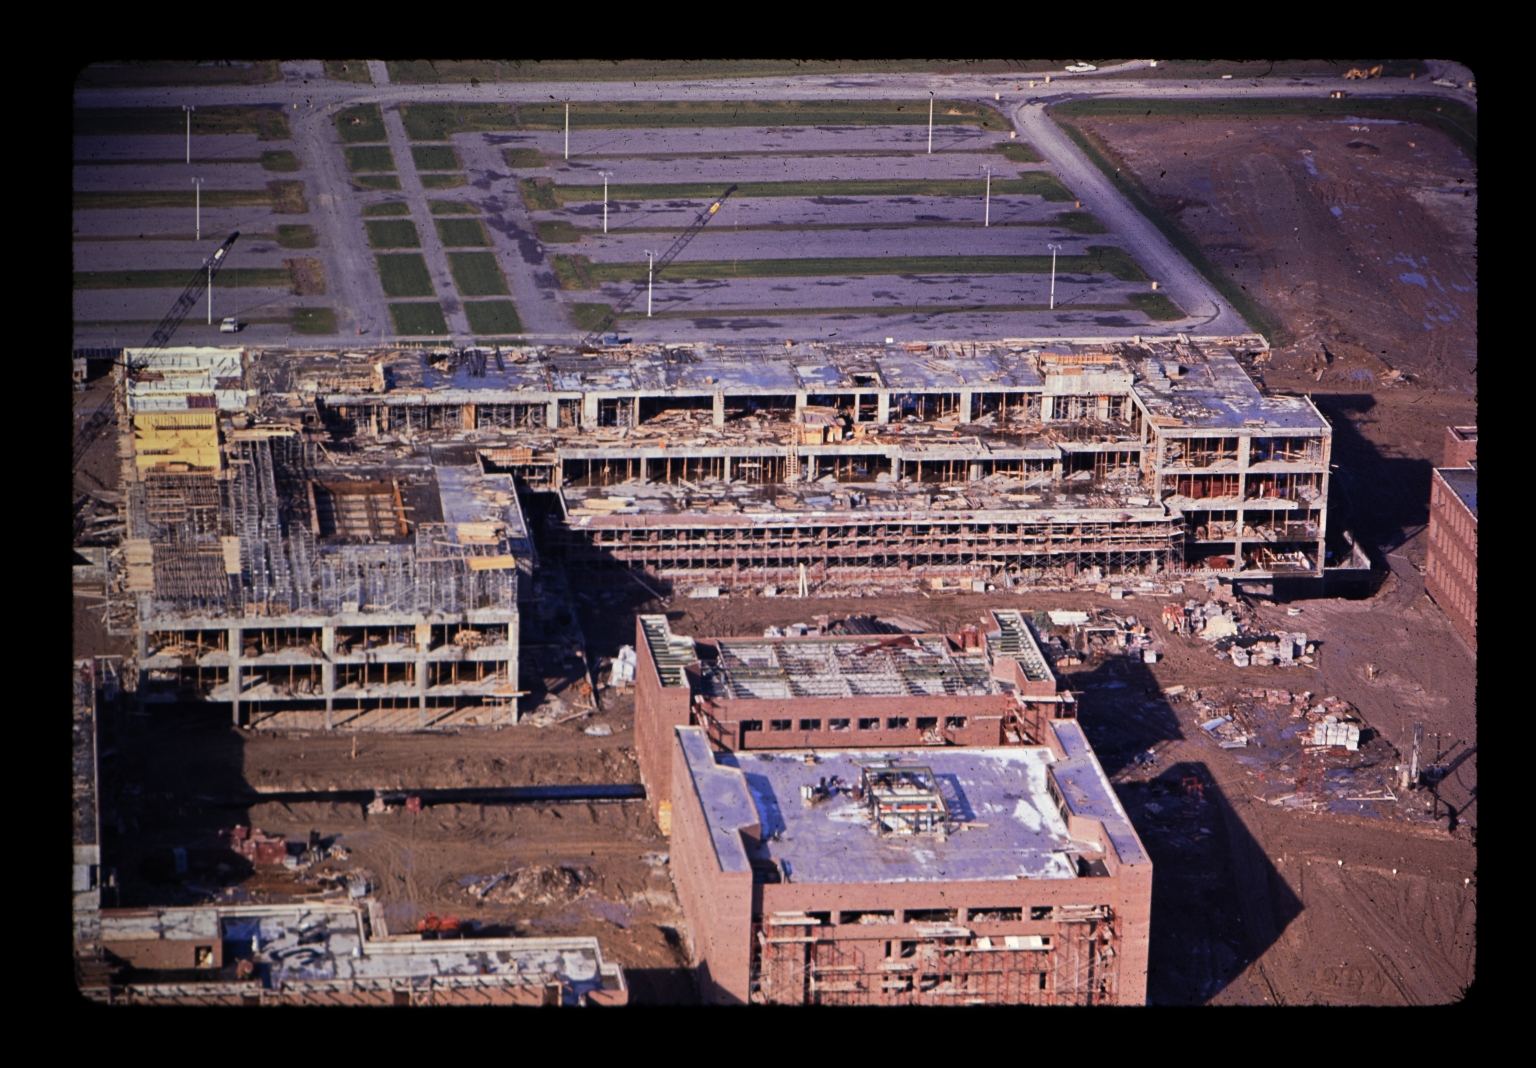 Aerial photograph of buildings under construction